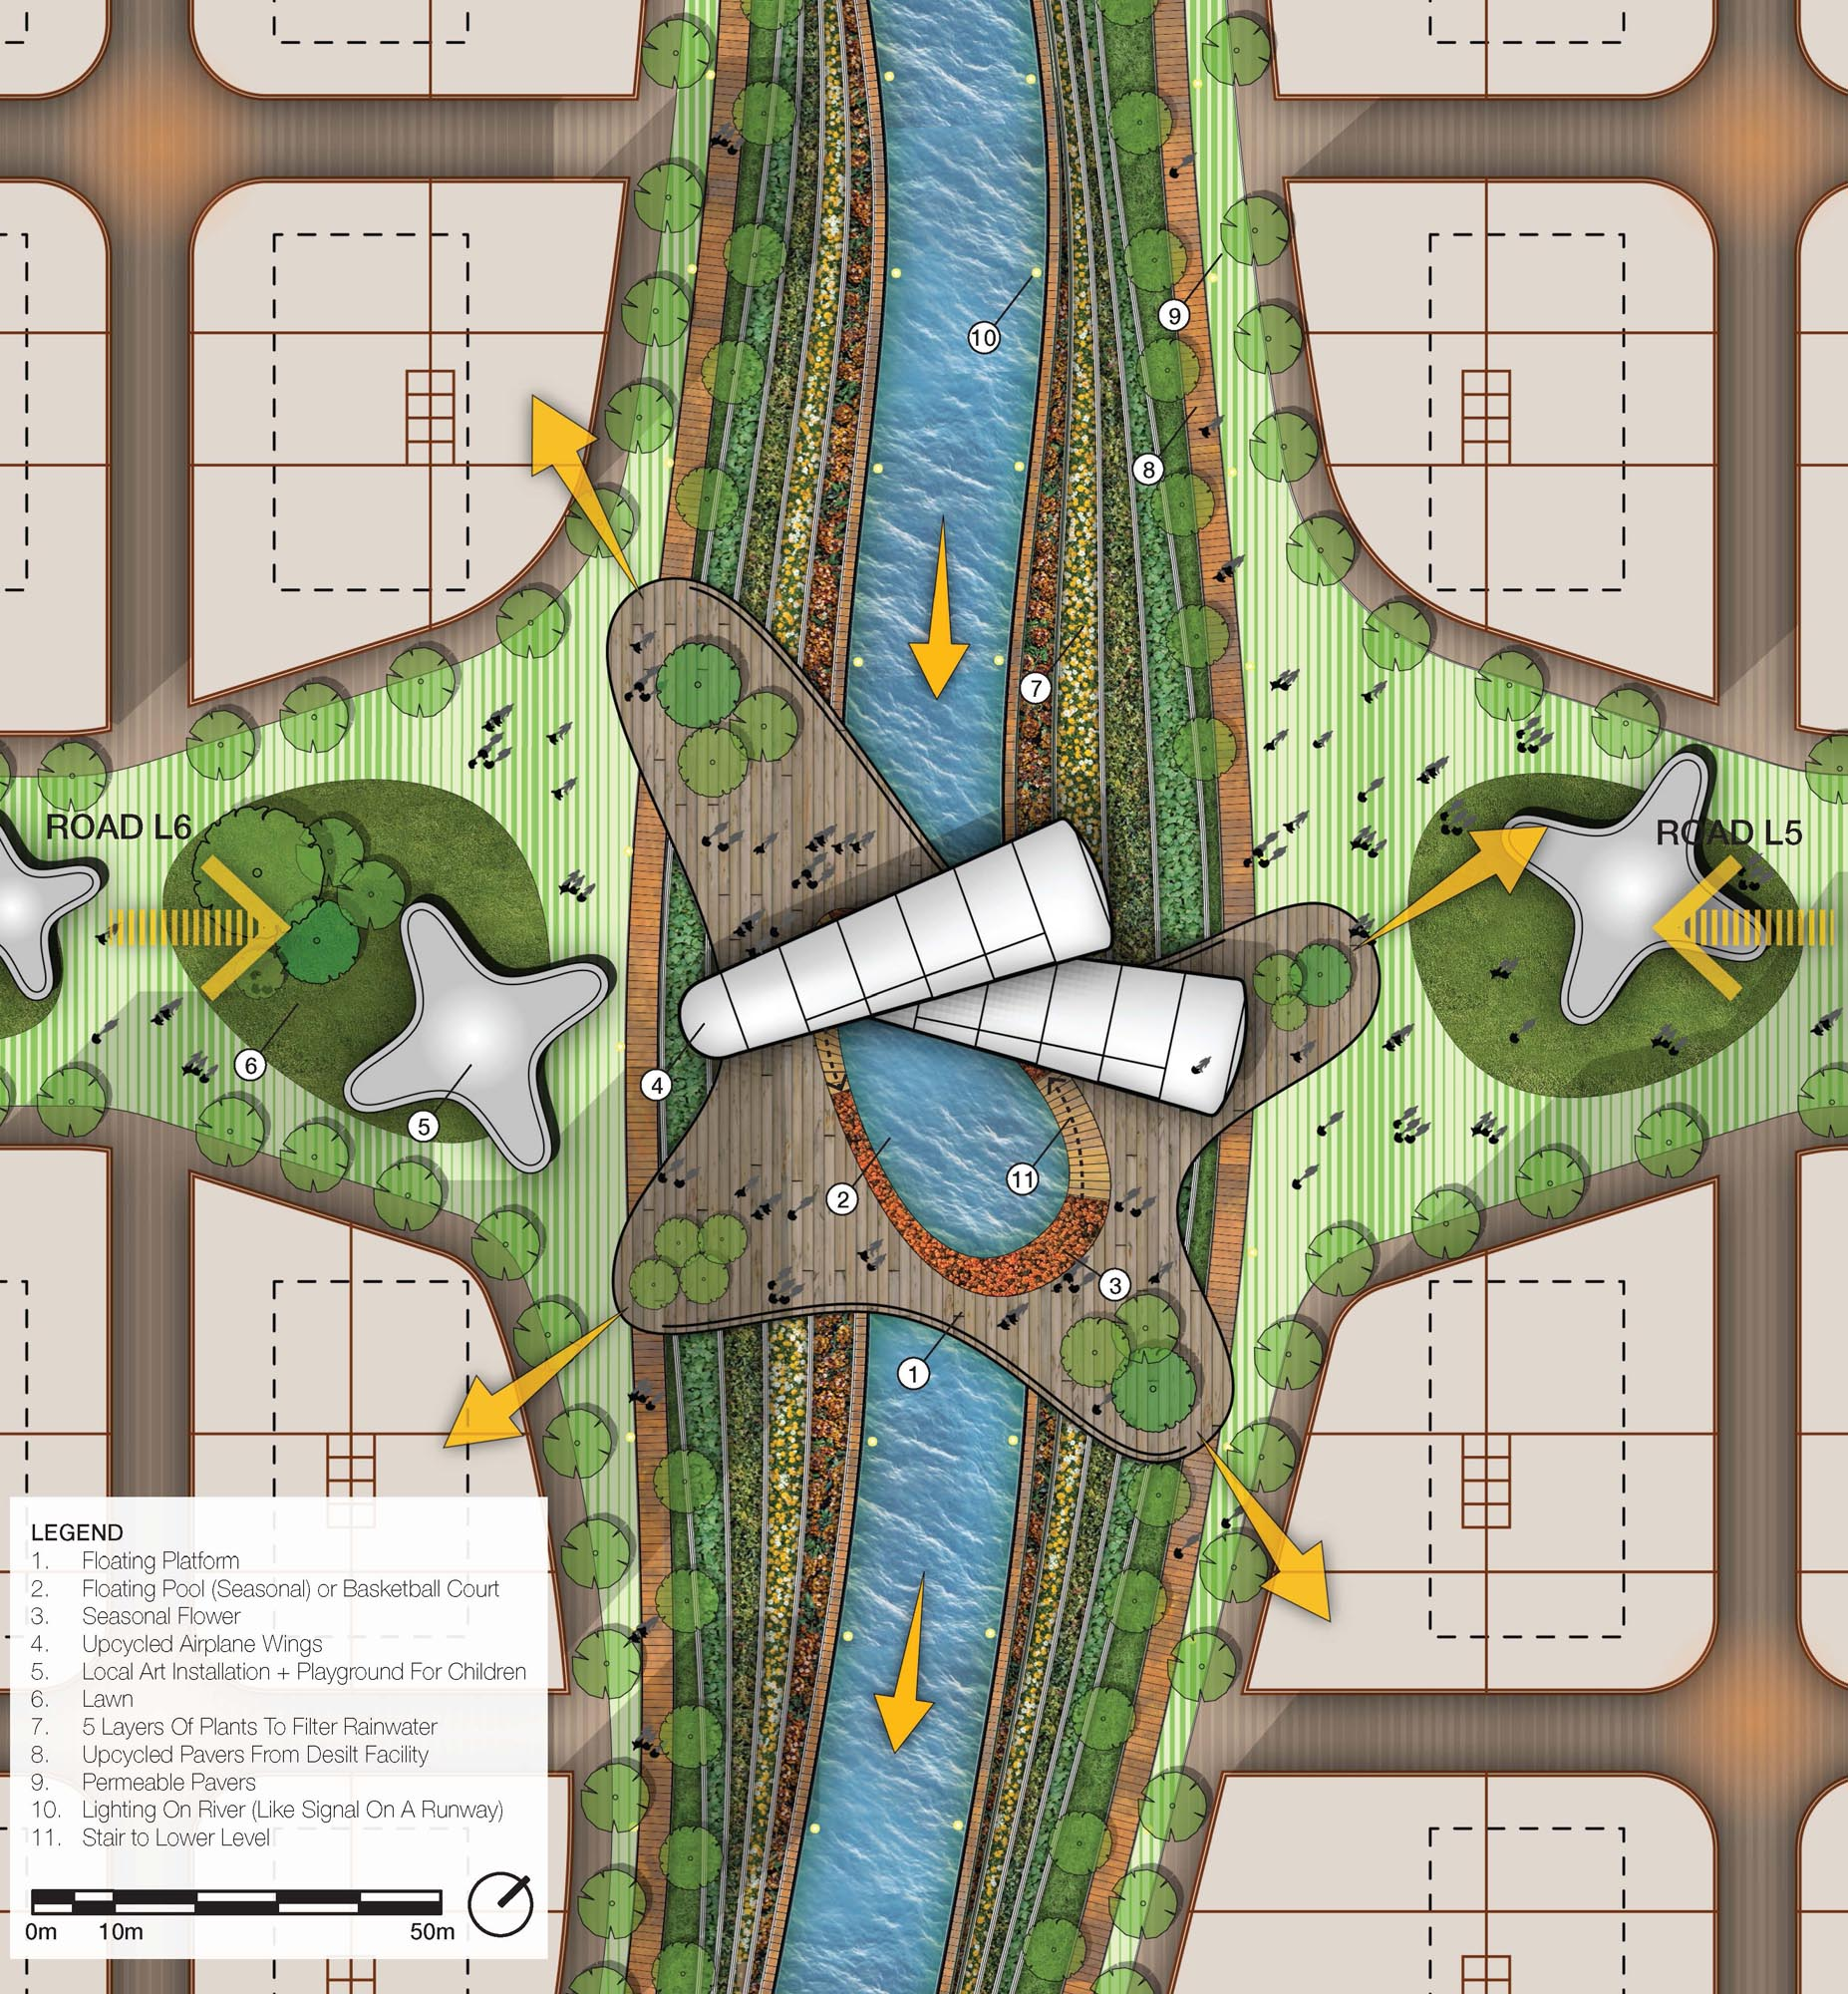 kai tak river, upcycle, urban planning, riverfront, waterfront, park